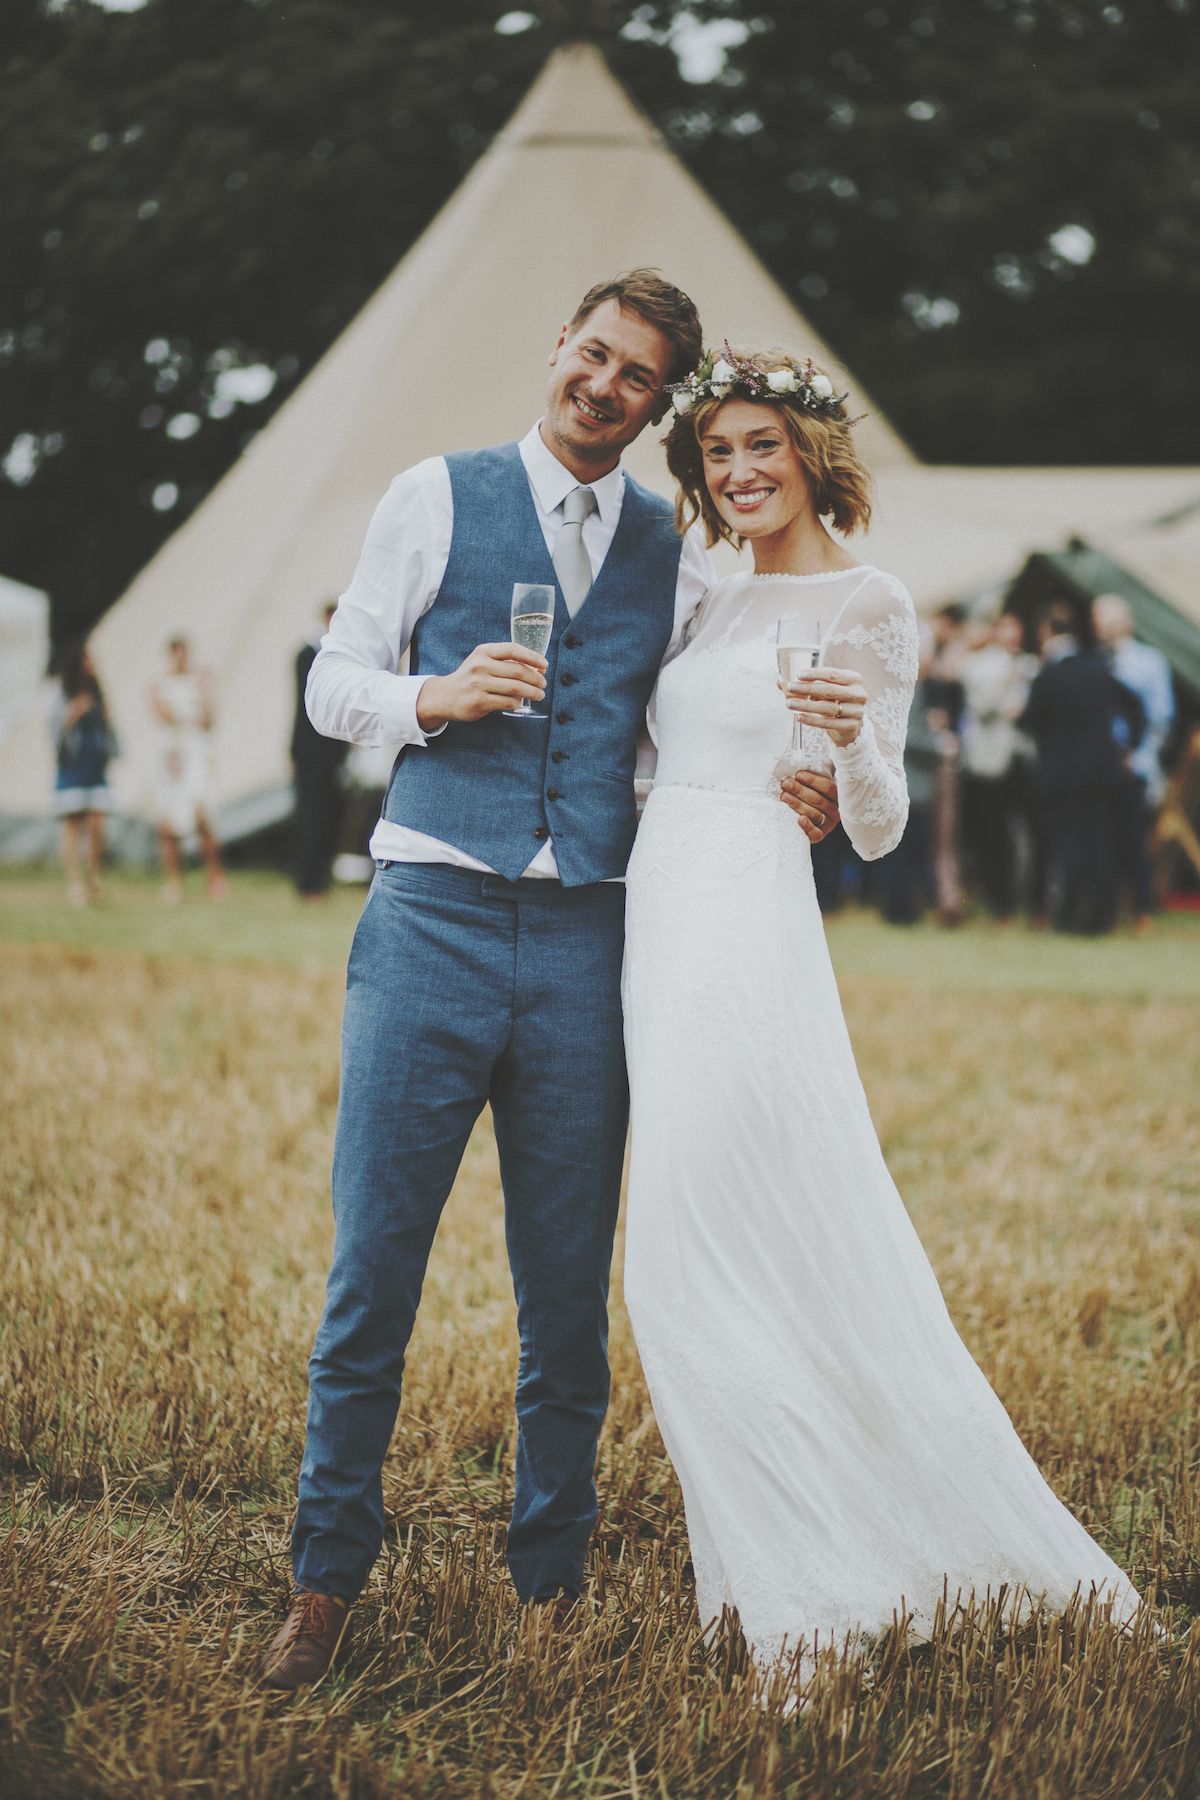 an-English-bride-in-a-simple-long-eleeve-backless-wedding-dress-and-the-groom-in-a-two-piece-blue-suit